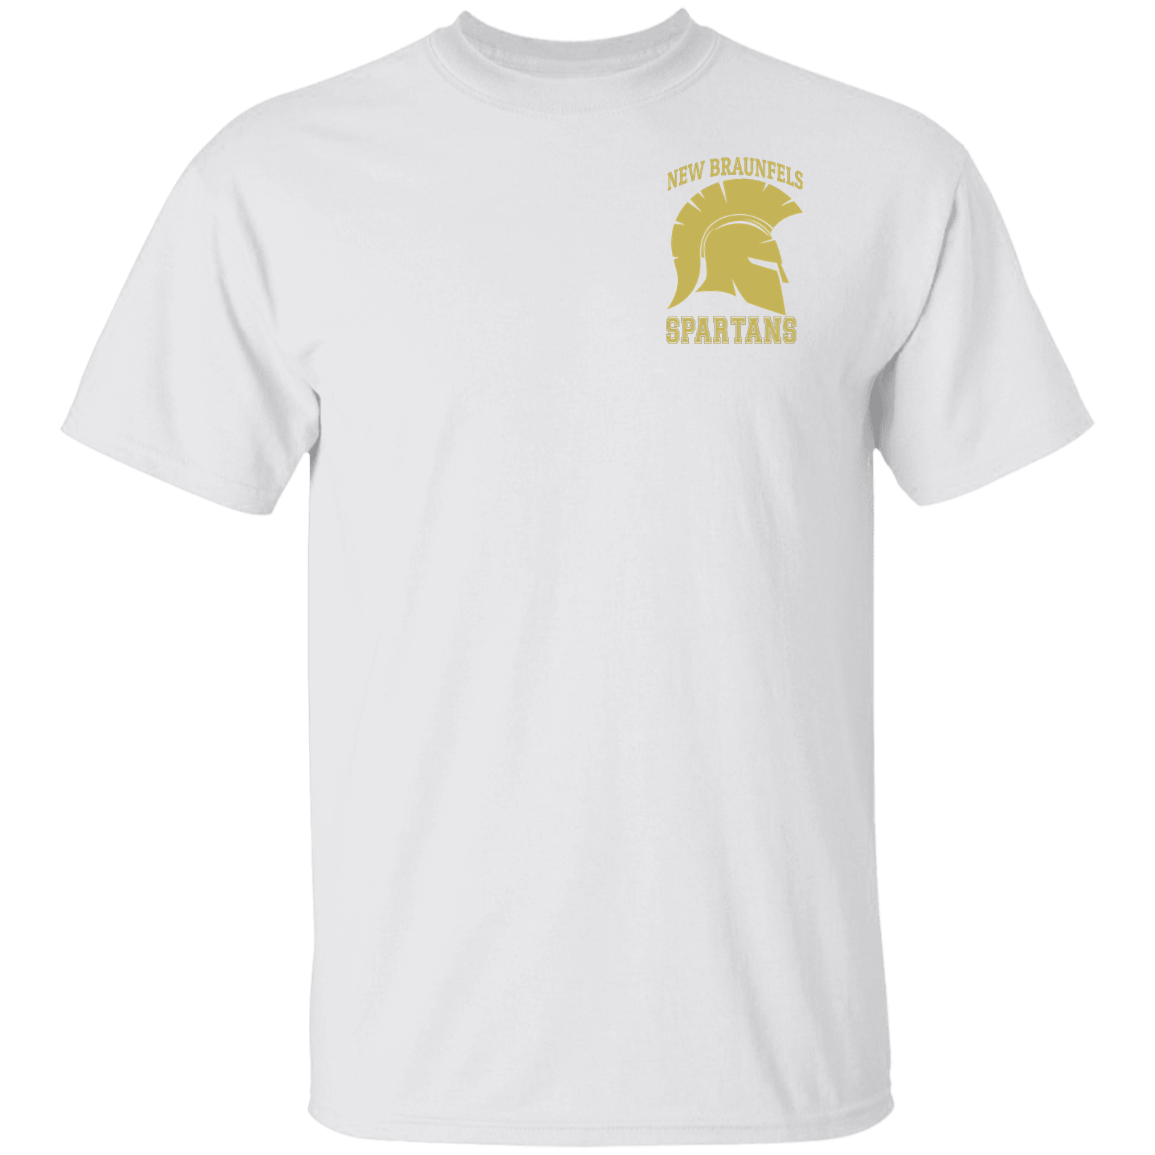 Spartans 5.3 oz. T-Shirt